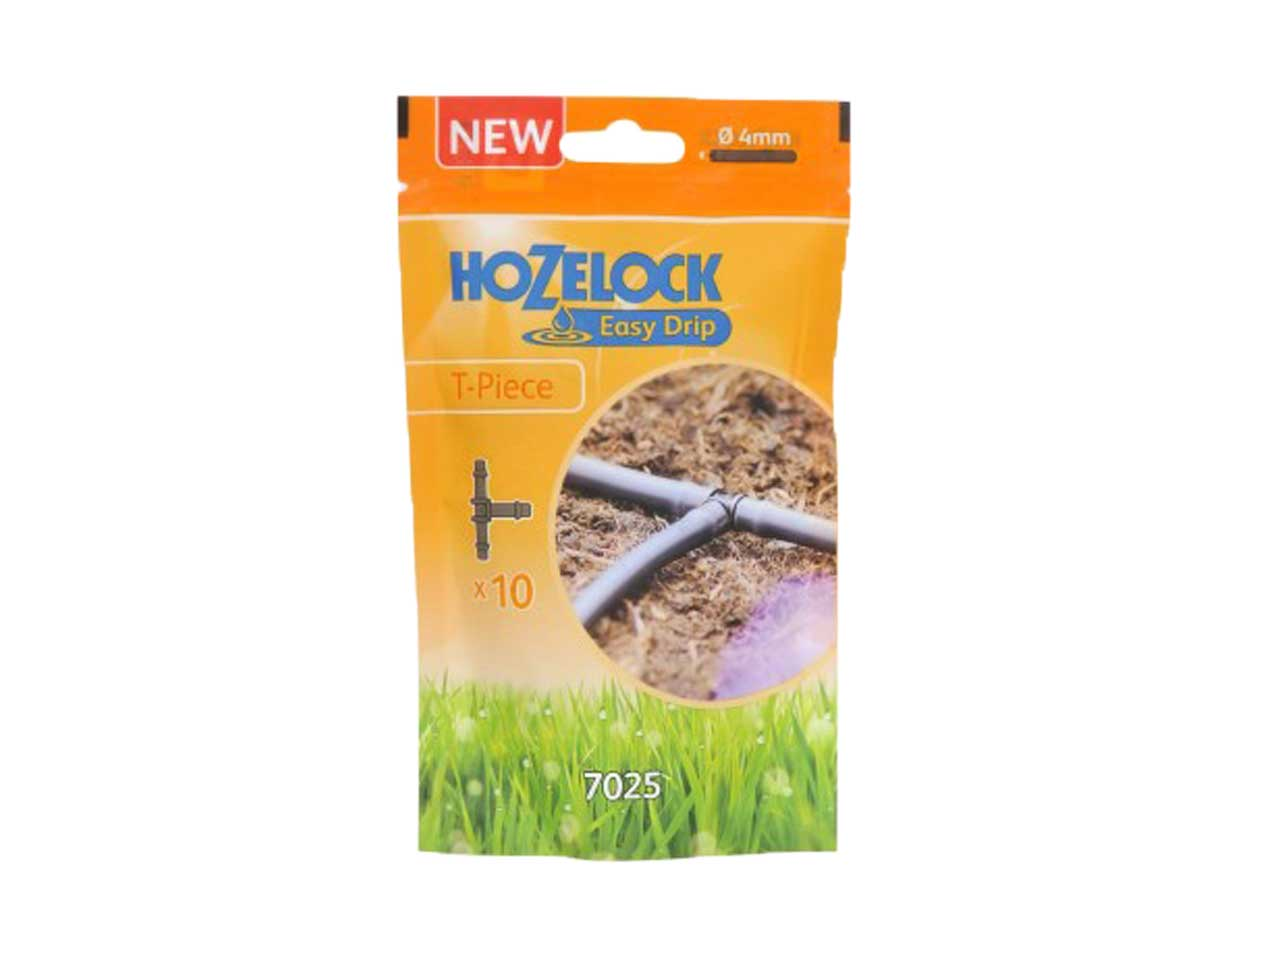 Pack of 10 1 . Hozelock 4 mm T-Piece